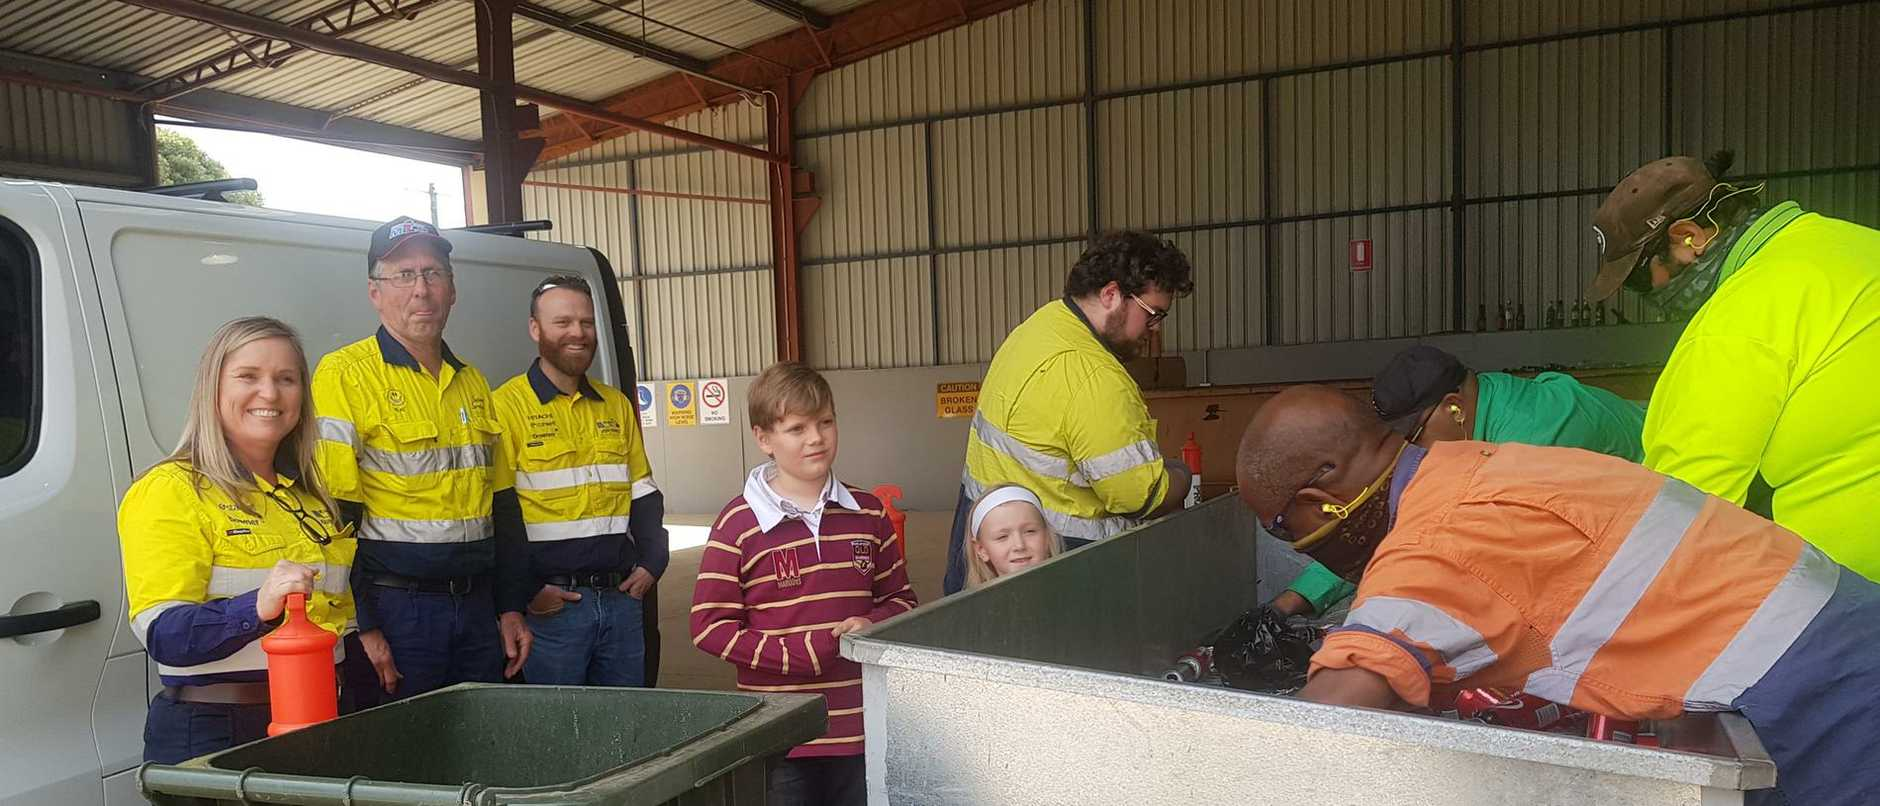 Karen Wall, Neil Salmon, Josh Burke (Stanwell Meandu Mine), Tanduringie State School students Alex Fitzsimons and Harper Fitzsimons, Danyon Mickelo (standing on same side as children), George Bone (closest to camera), Rhys Cobbo, Joe Sullivan (all from Containers For Change Kingaroy)